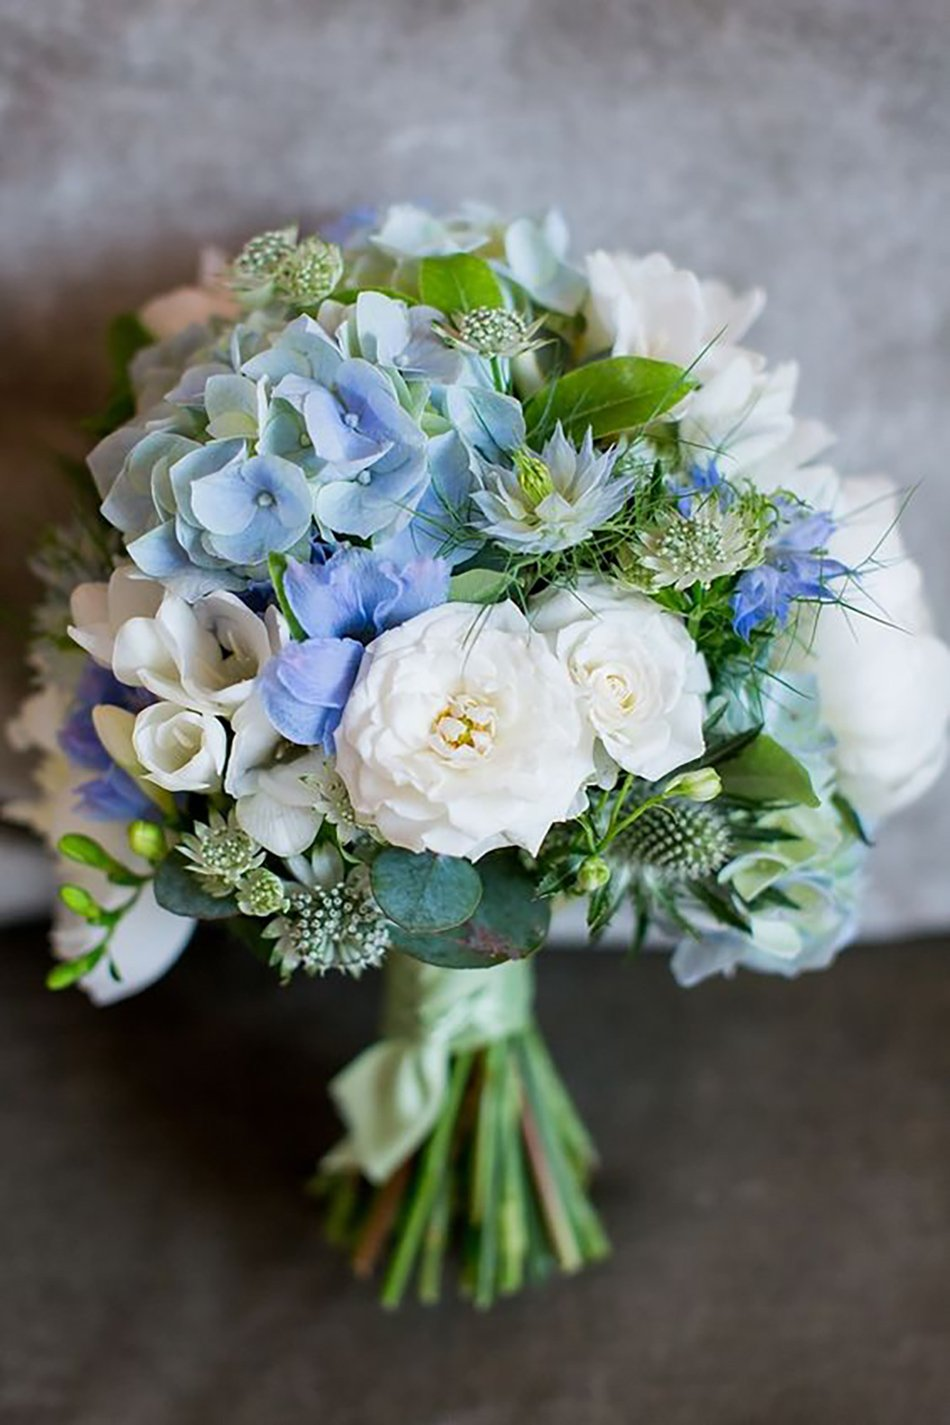 choose blue roses wedding bouquets for your wedding 4 - Choose Blue Roses Wedding Bouquets for Your Wedding